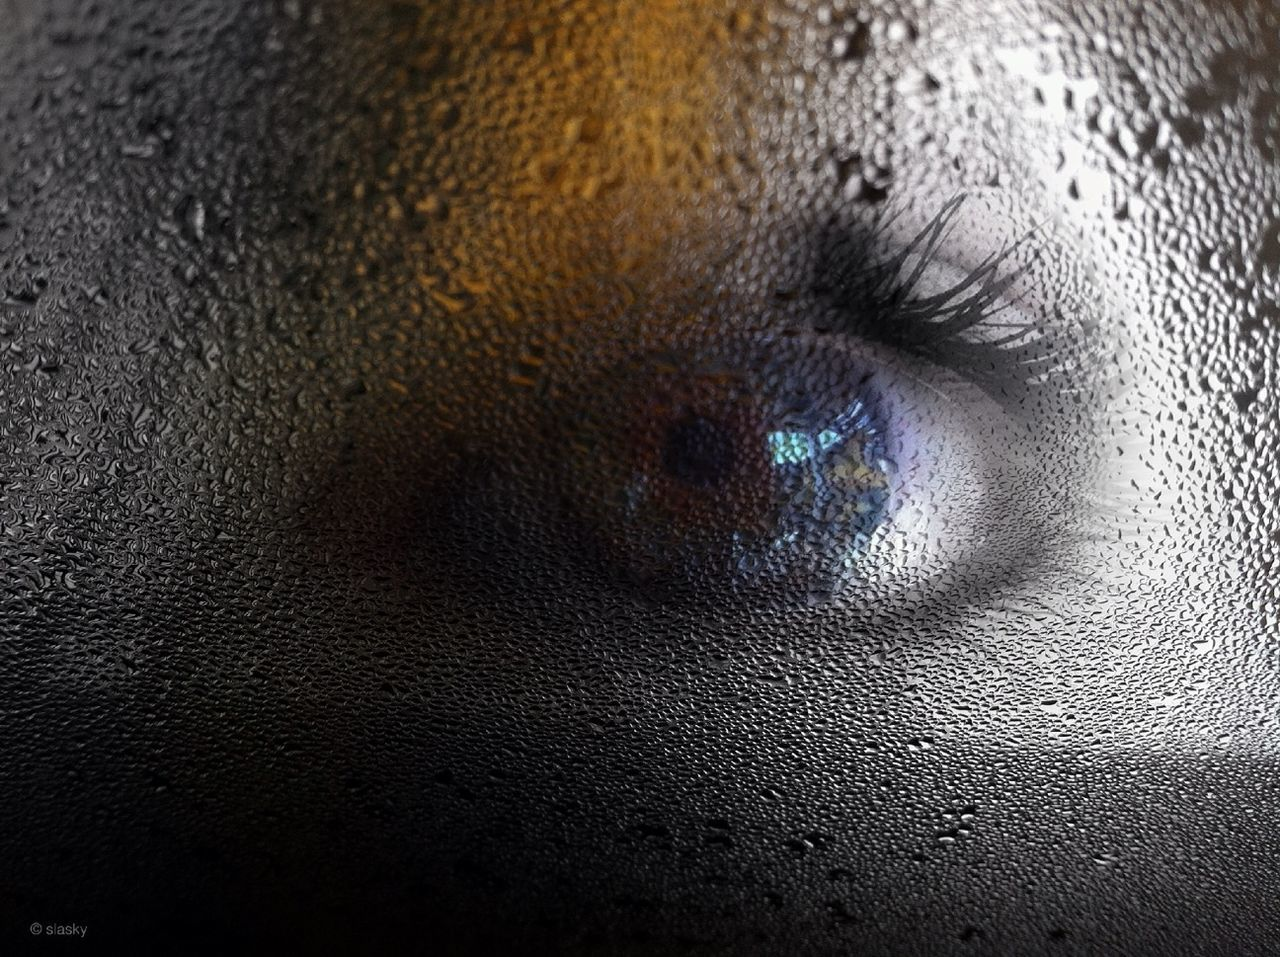 close-up, full frame, extreme close-up, human eye